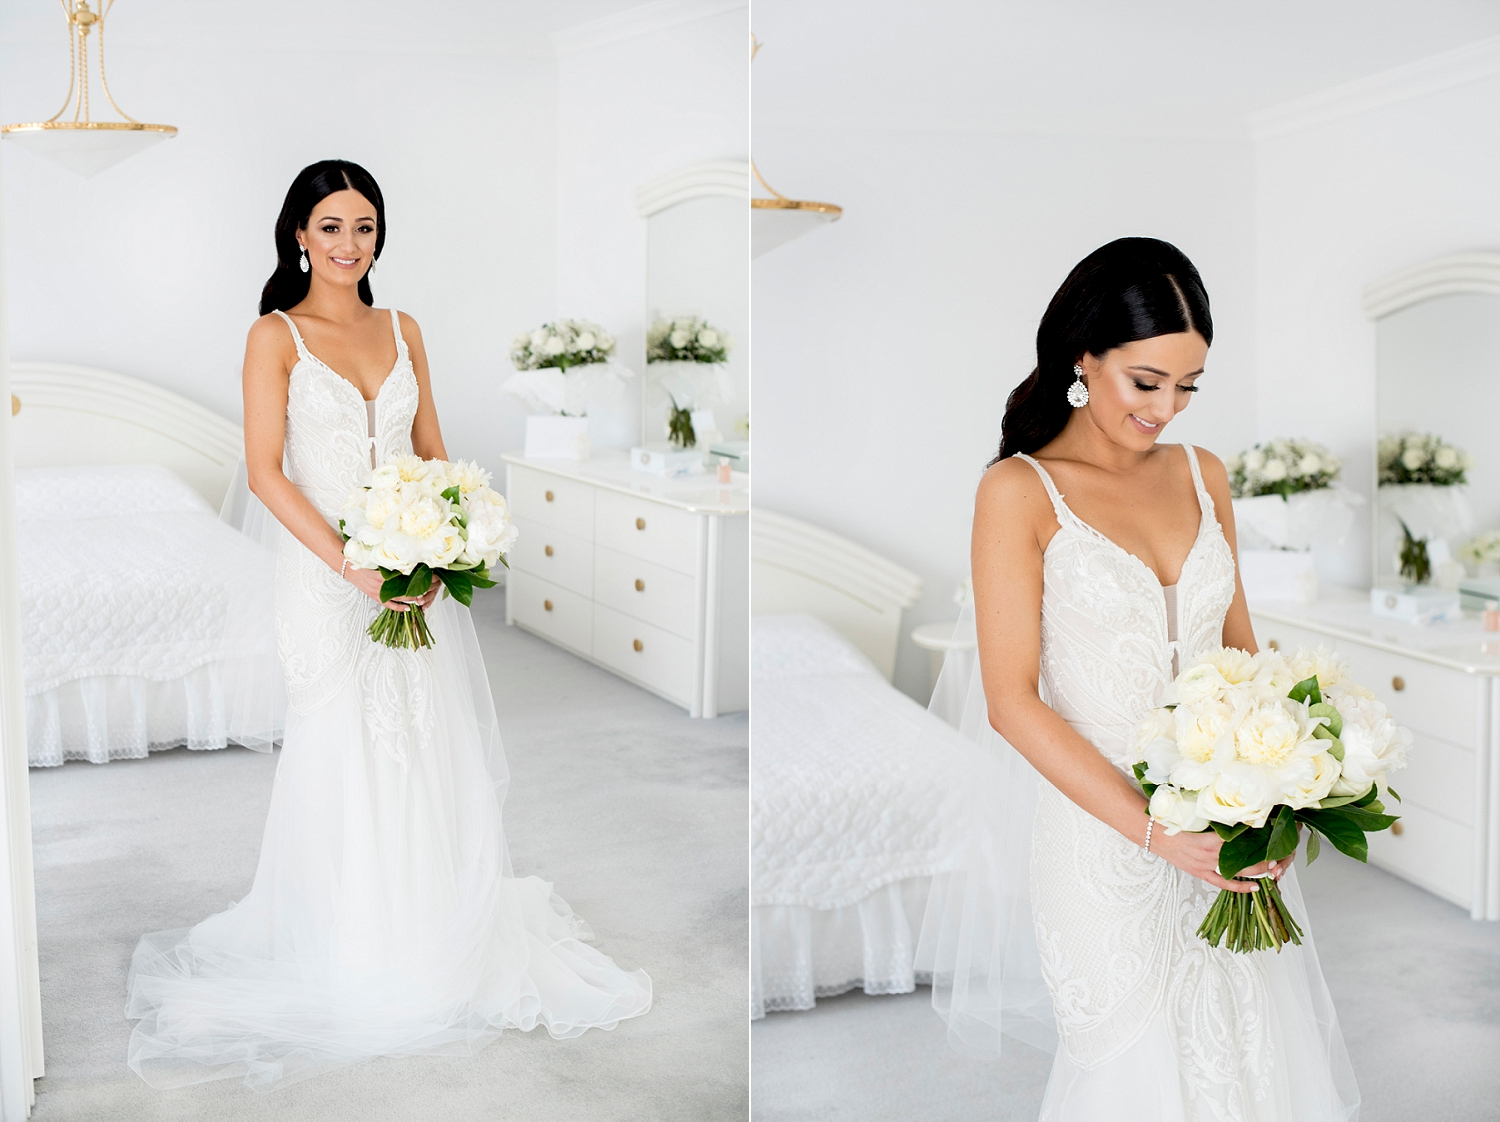 17_zanzis wedding dress perth.jpg